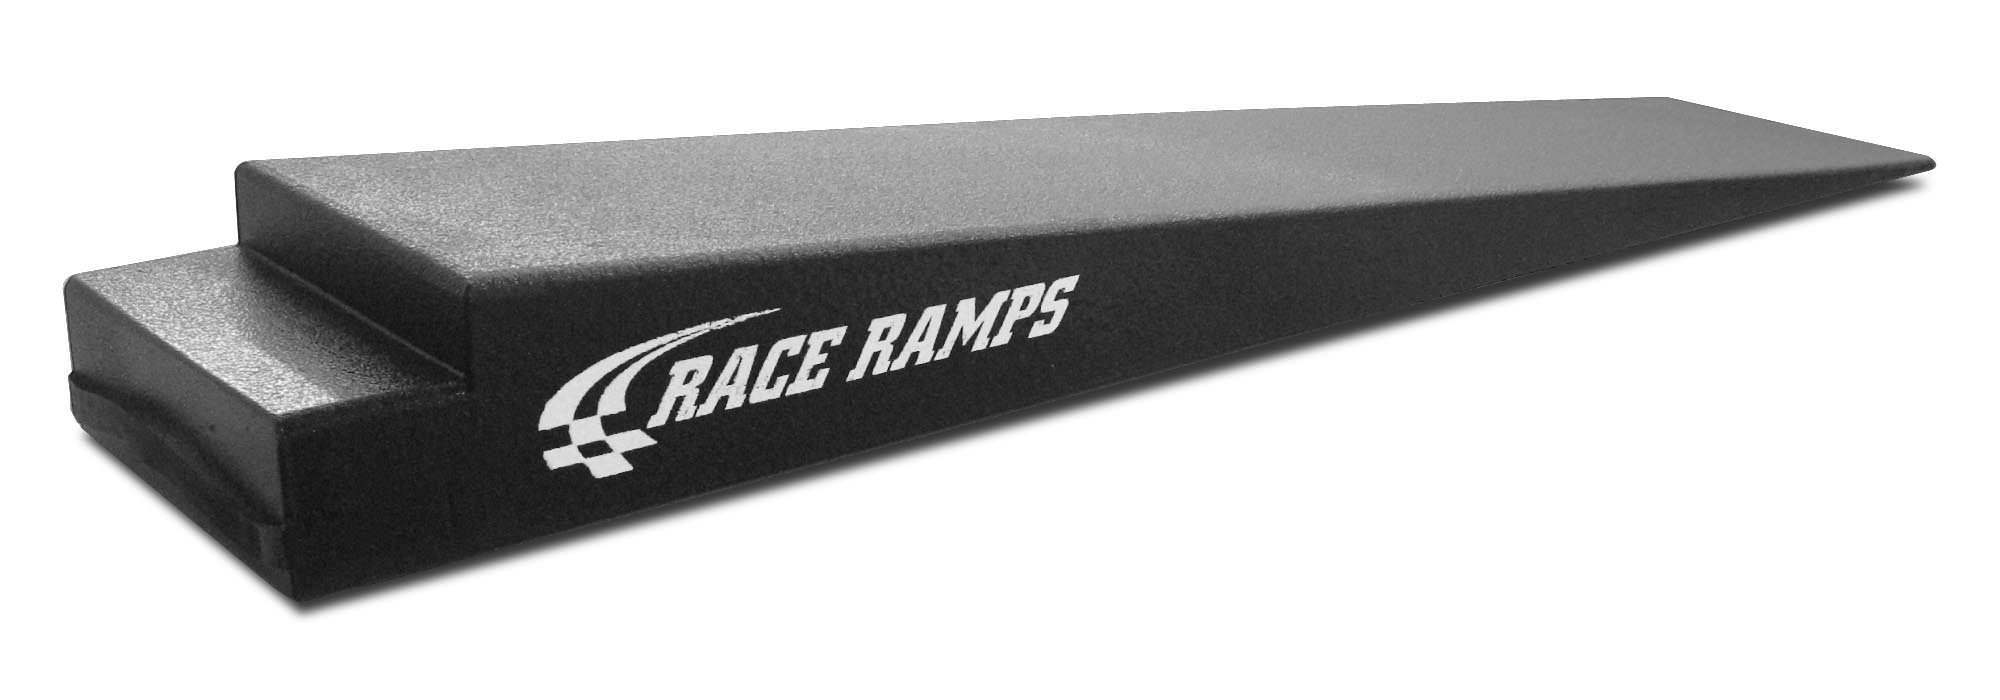 Race Ramps RR-TR-8XL Trailer Ramp, 8 in Lift Height, 74 in Long, 14 in Wide, 6.6 Degree Incline, Pair